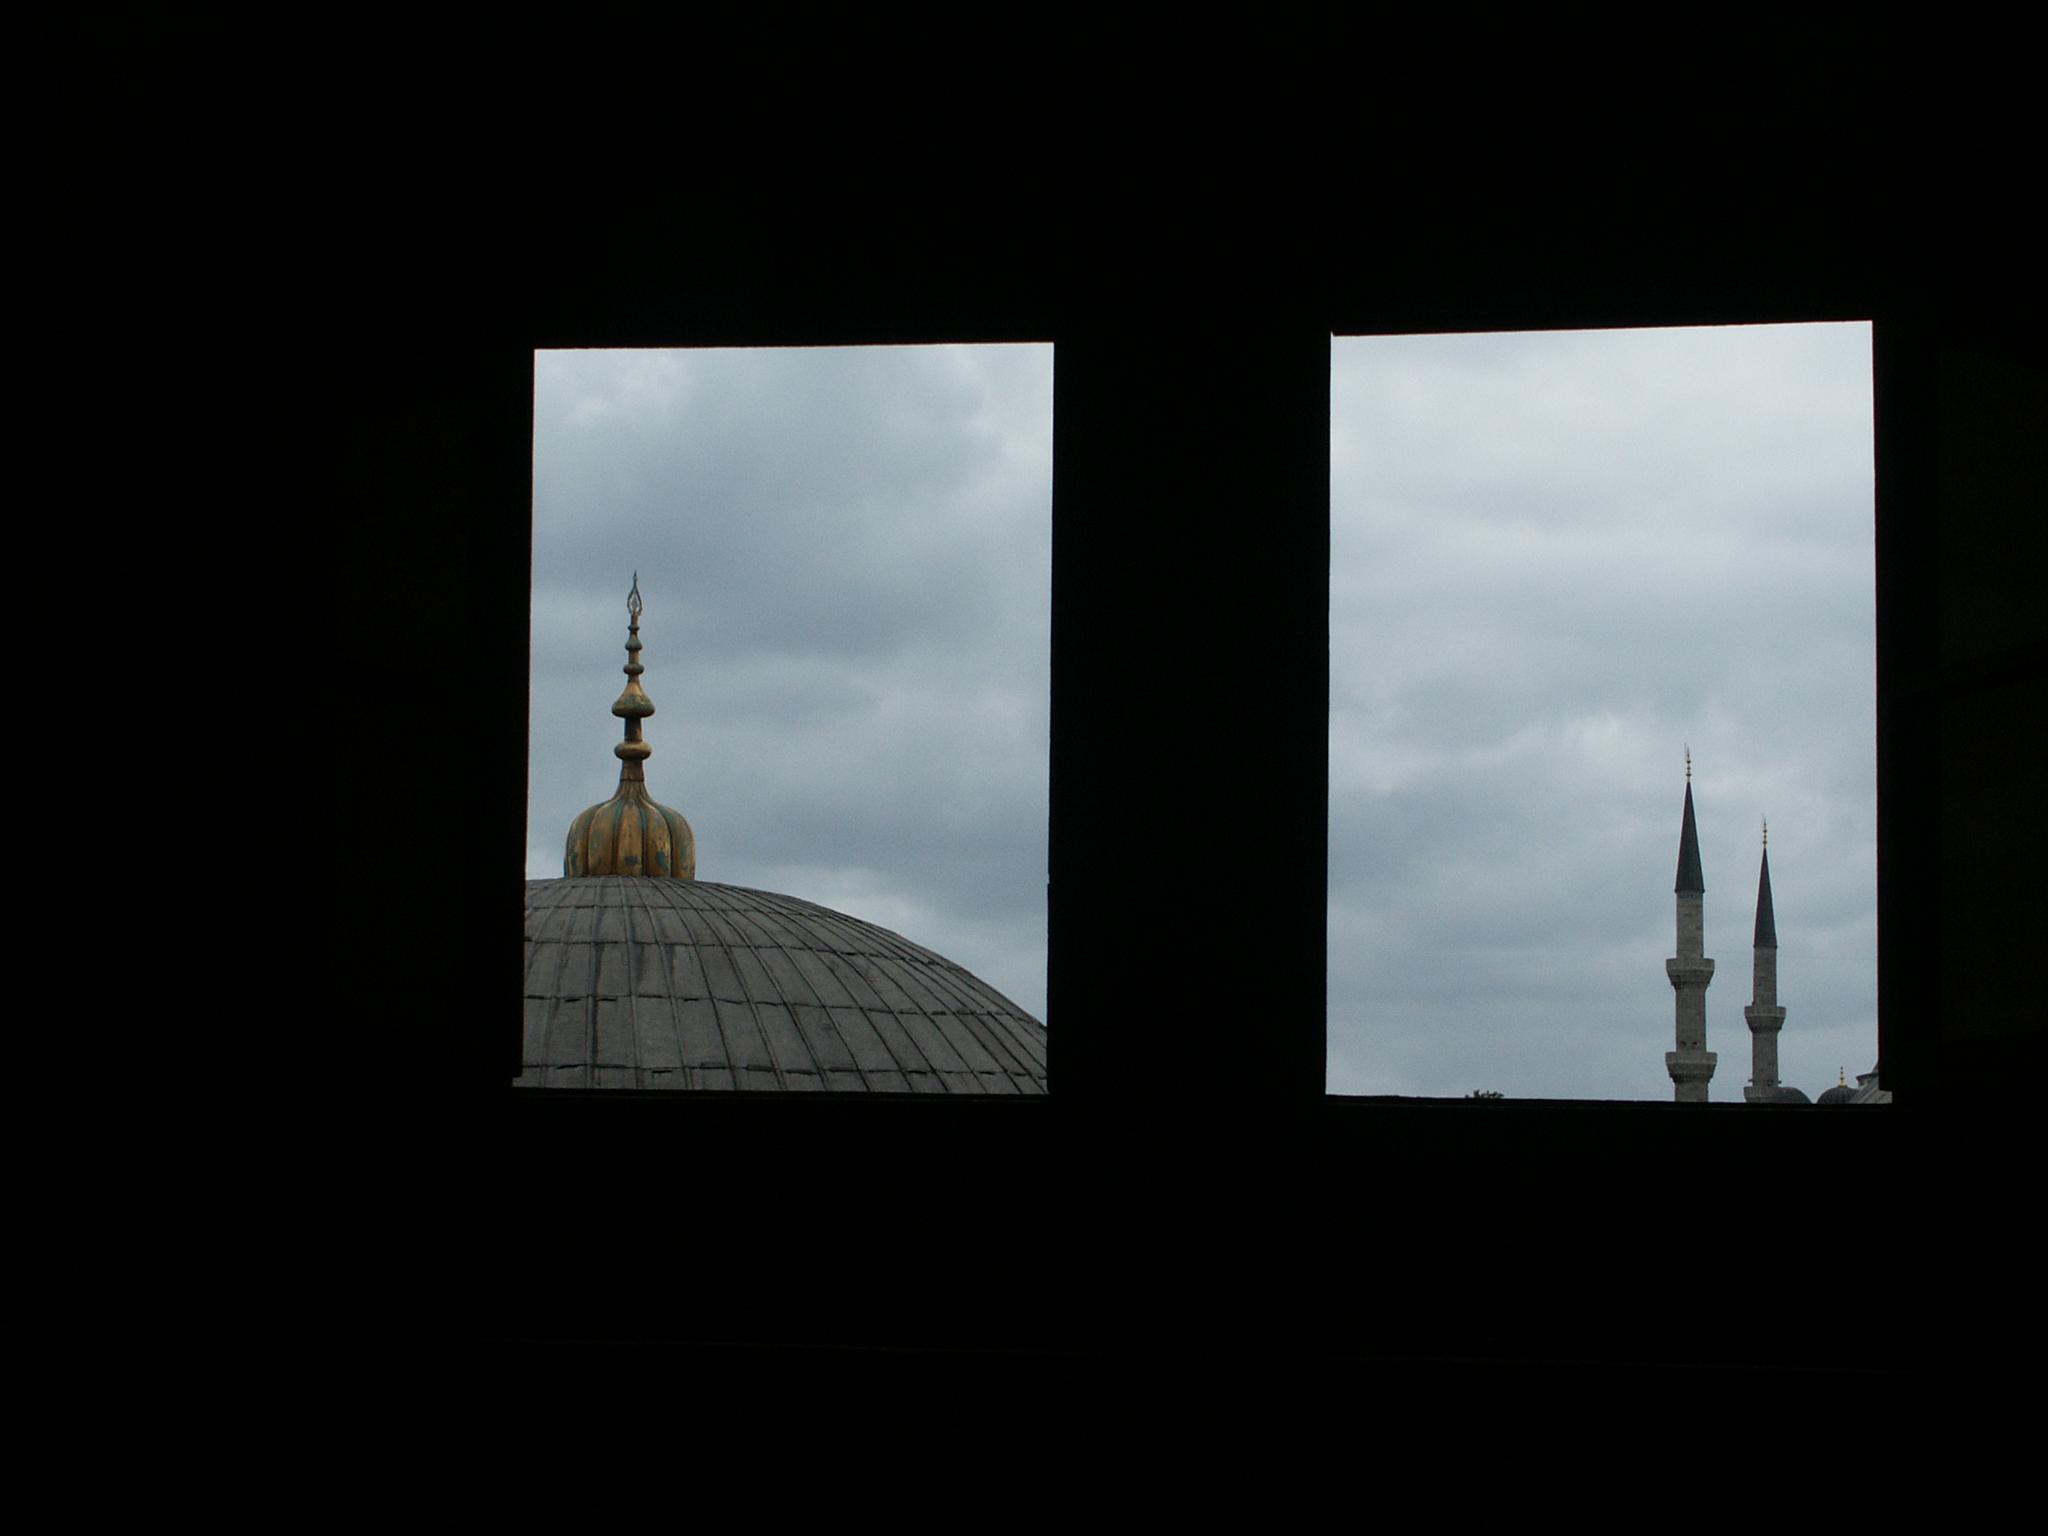 Inside the Mosque by pierpa63